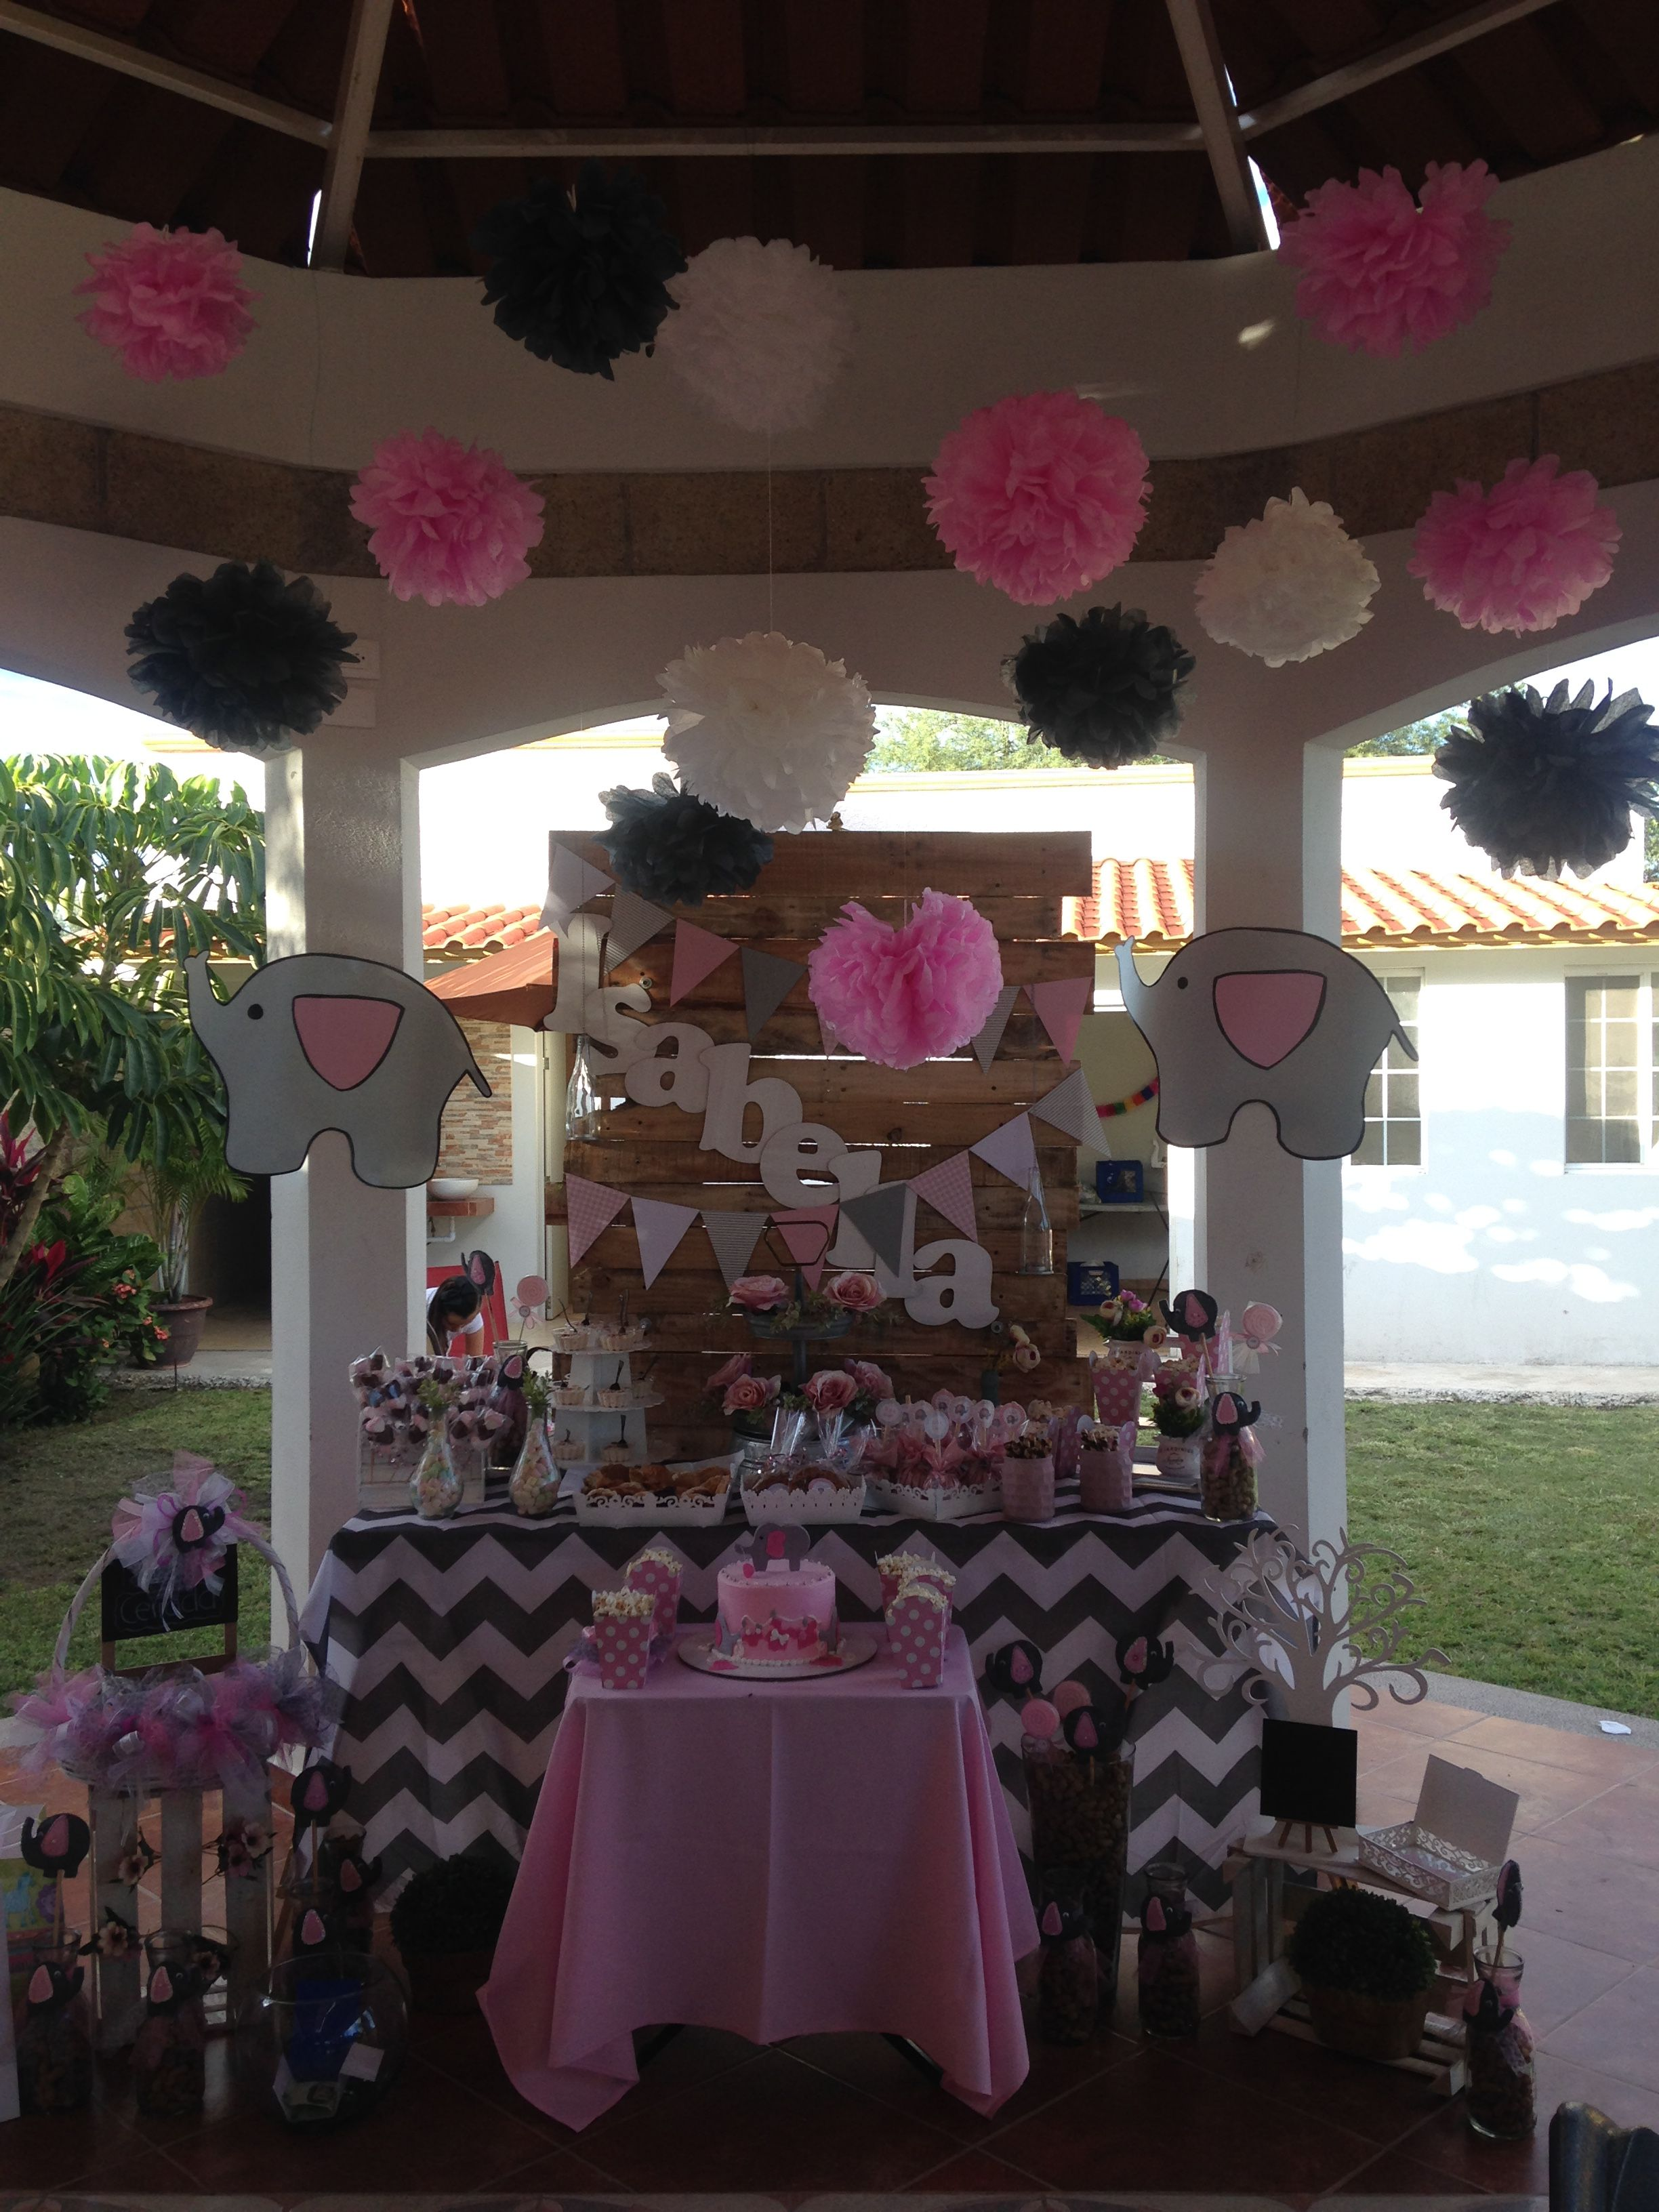 Pin de kenia diaz en baby shower pinterest baby shower - Decoracion de belenes ...